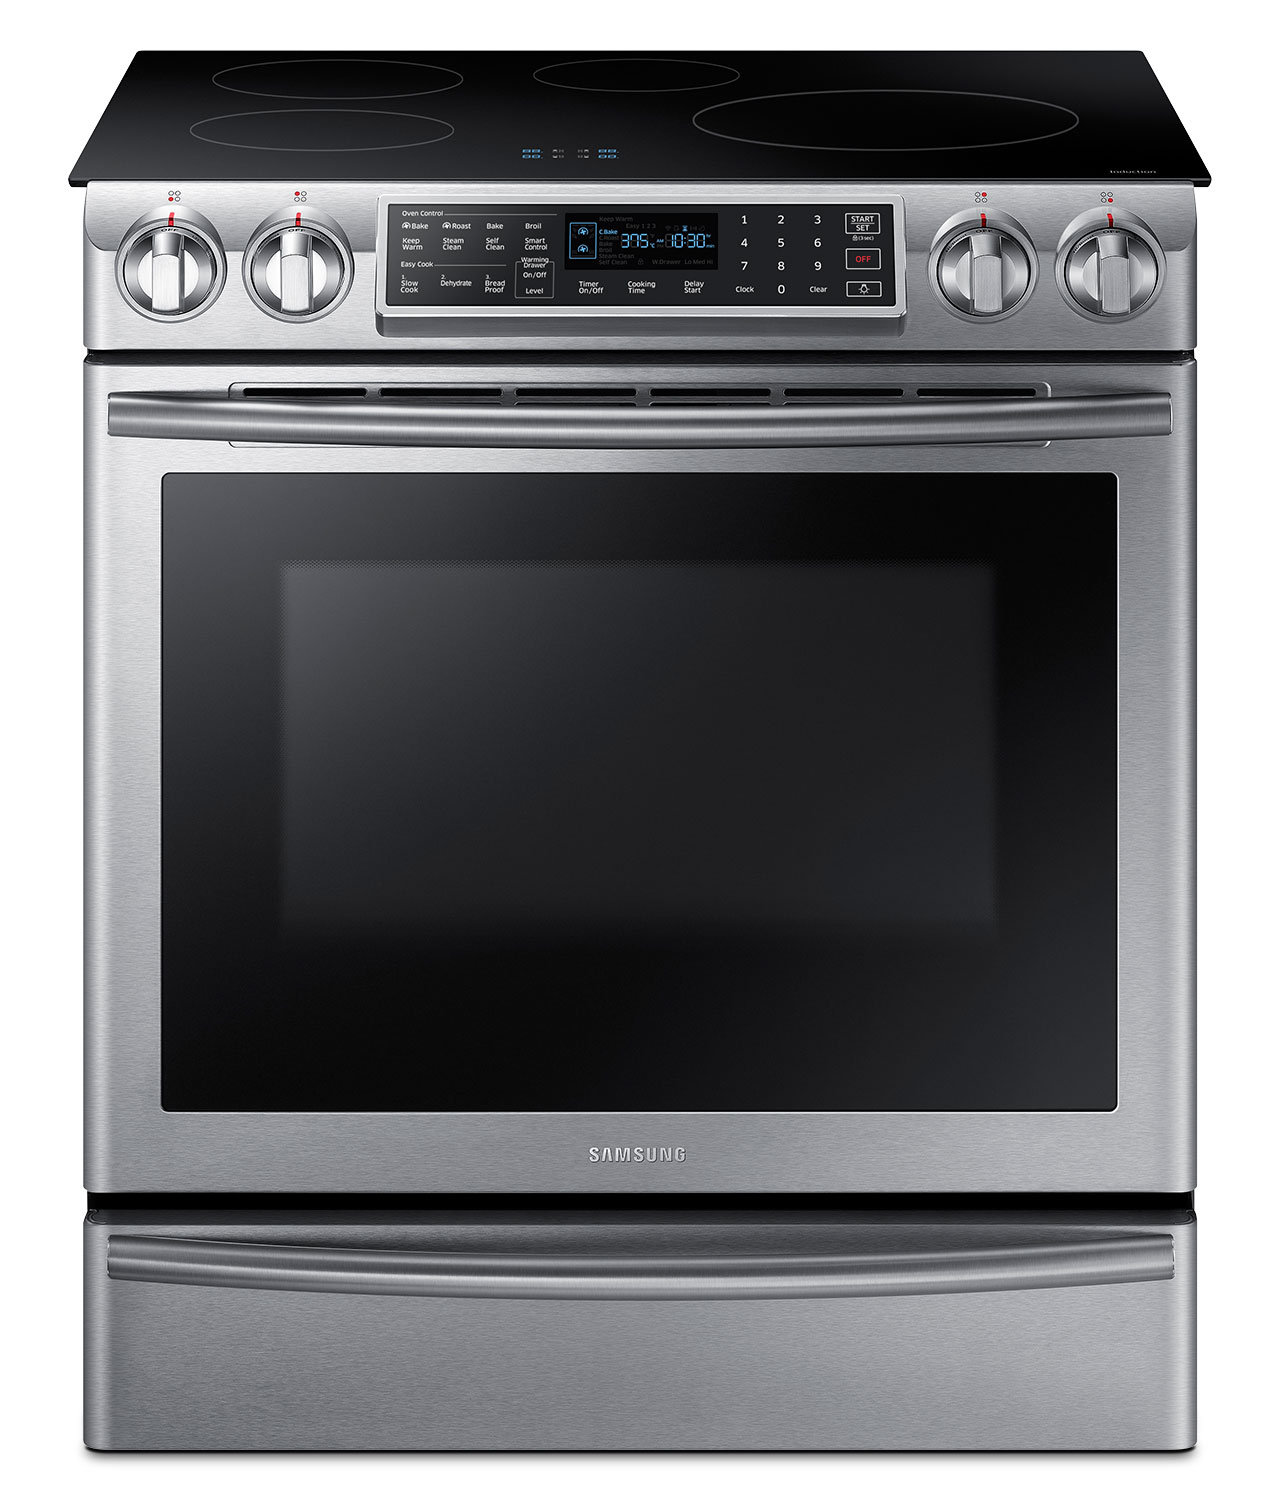 Samsung 5.8 Cu. Ft. Slide-In Induction Range – NE58K9560WS/AC